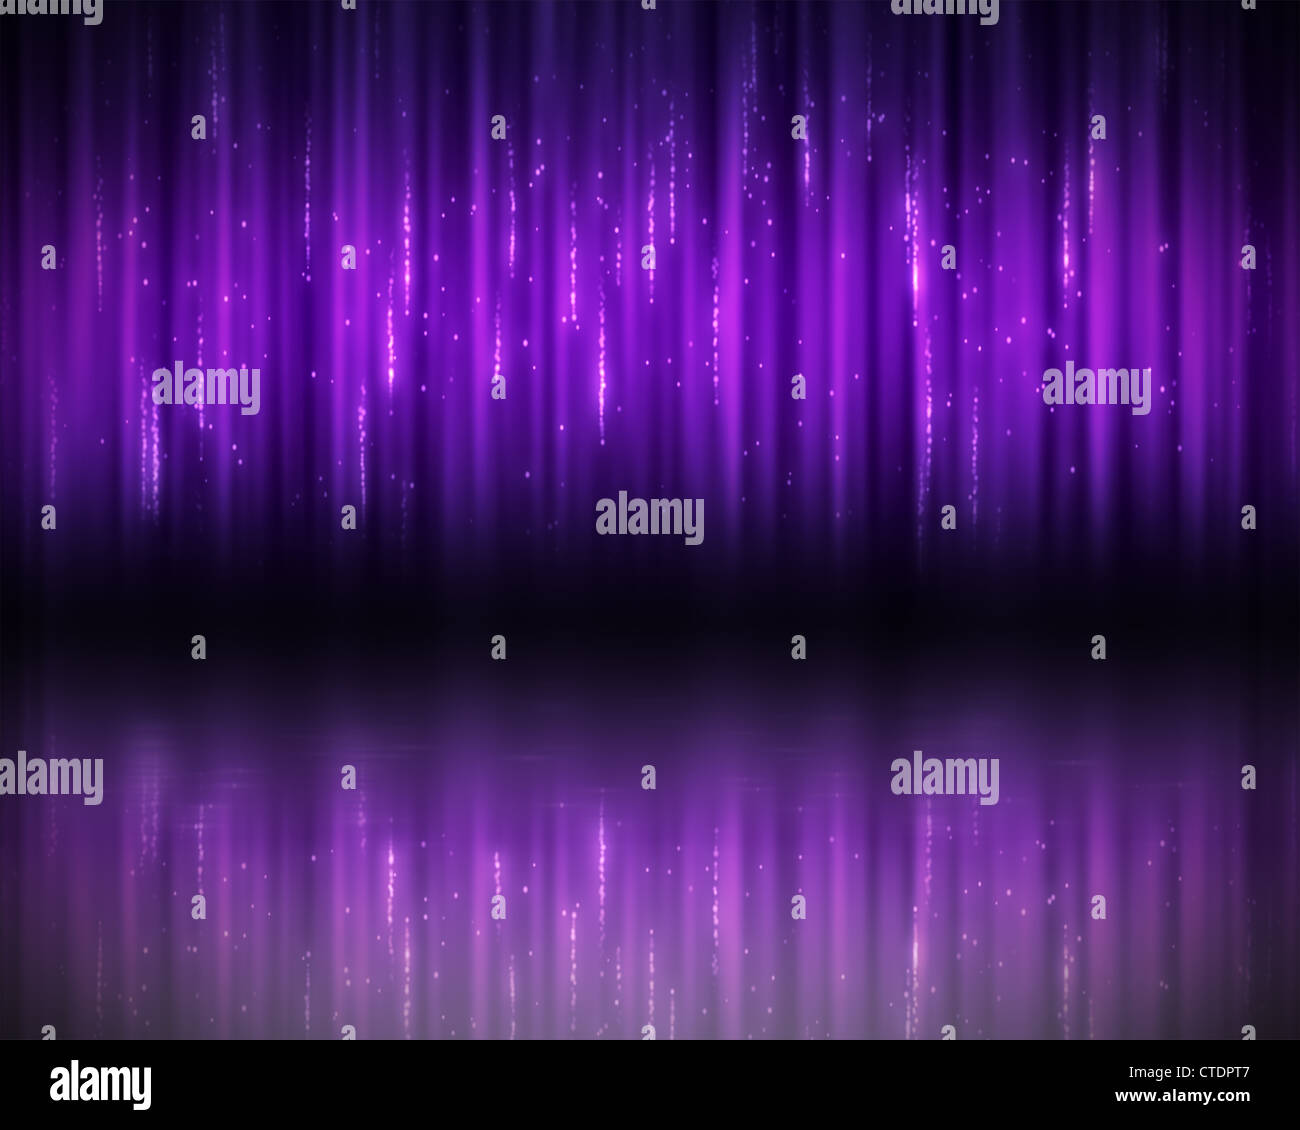 Background of purple lines Stock Photo